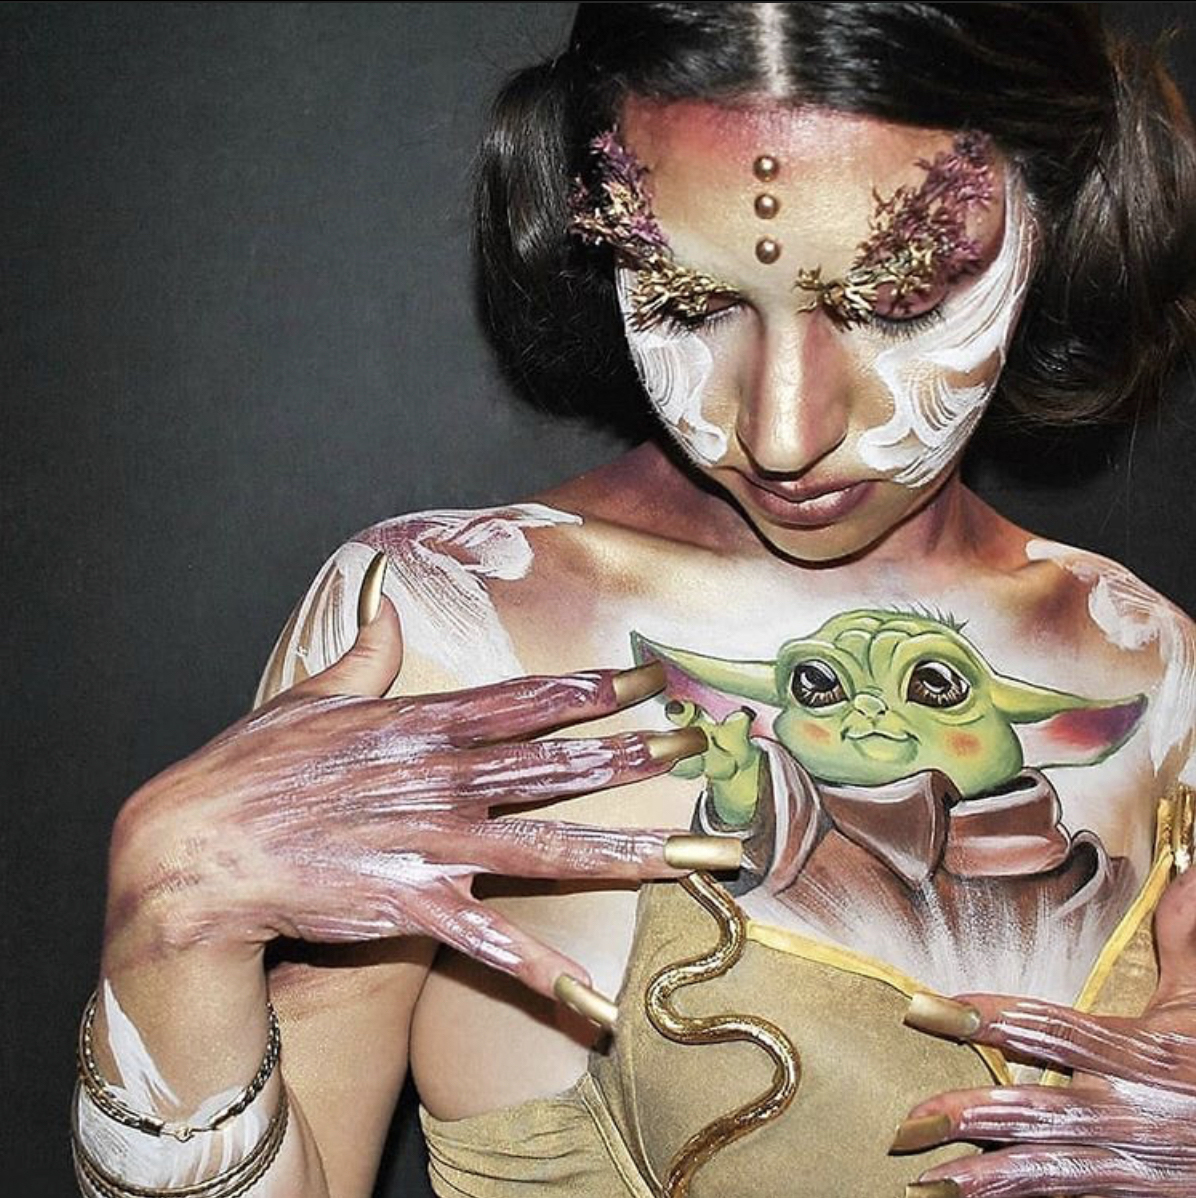 May the 4th Be Floral Skin City Contest - Audience Choice Winner - Belly Art Barcelona from Spain